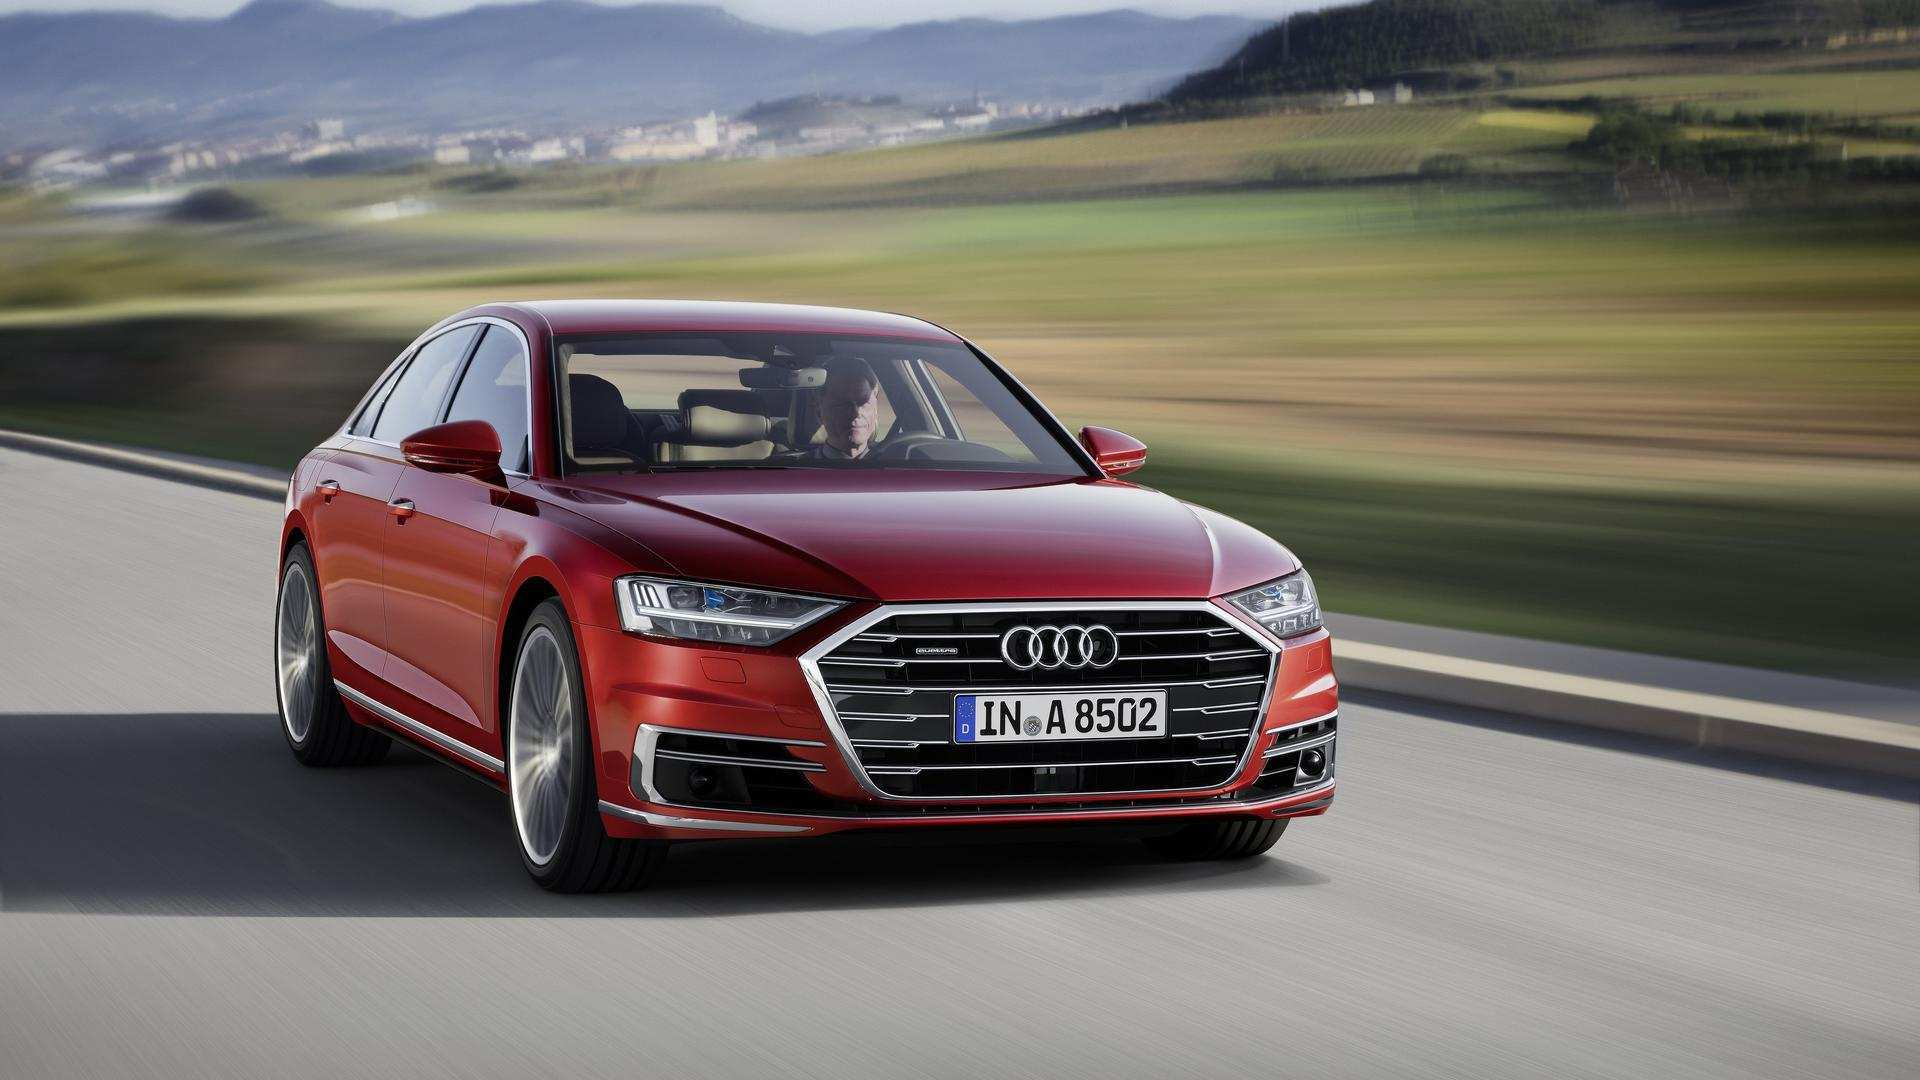 41 All New 2019 Audi A8 L In Usa Configurations